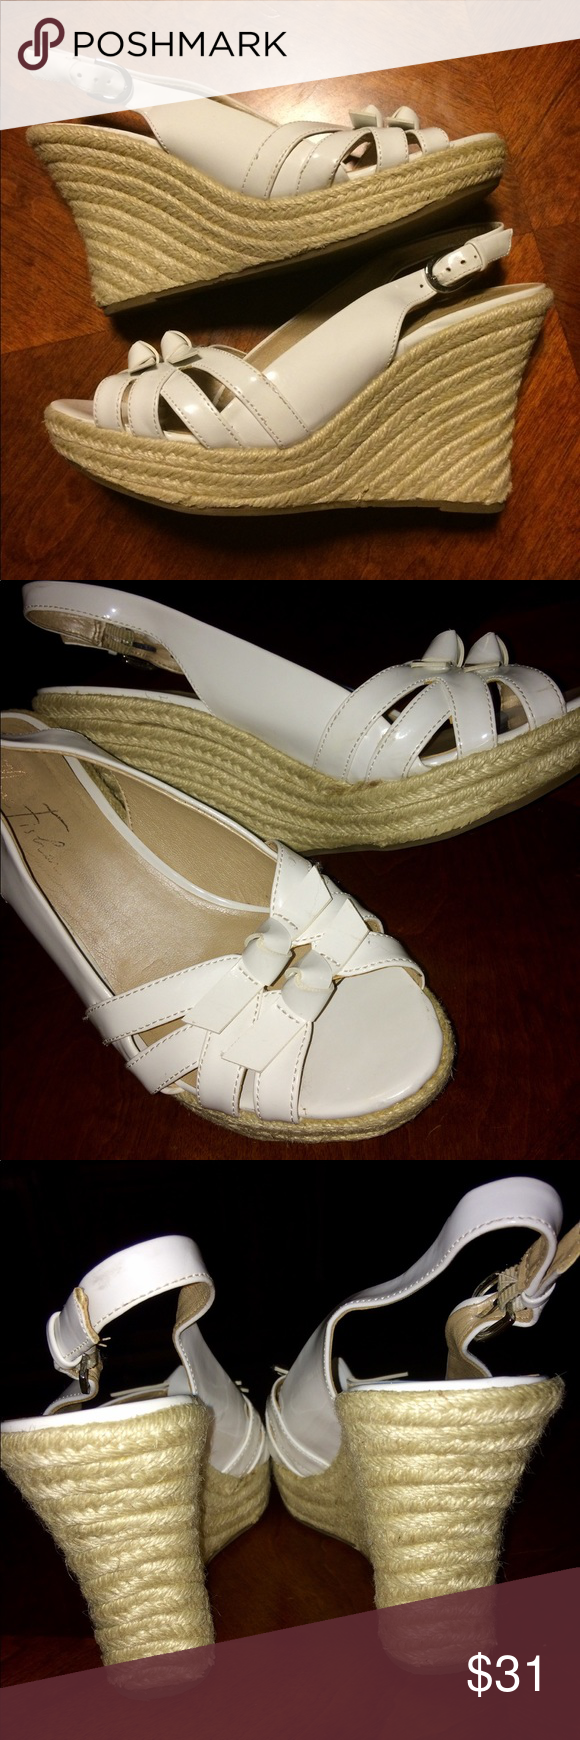 Marc Fisher Wedge White Sandals Marc Fisher White Wedge Sandals Great For Easter So Cute Has S Womens Sandals Wedges Marc Fisher Shoes White Wedge Sandals